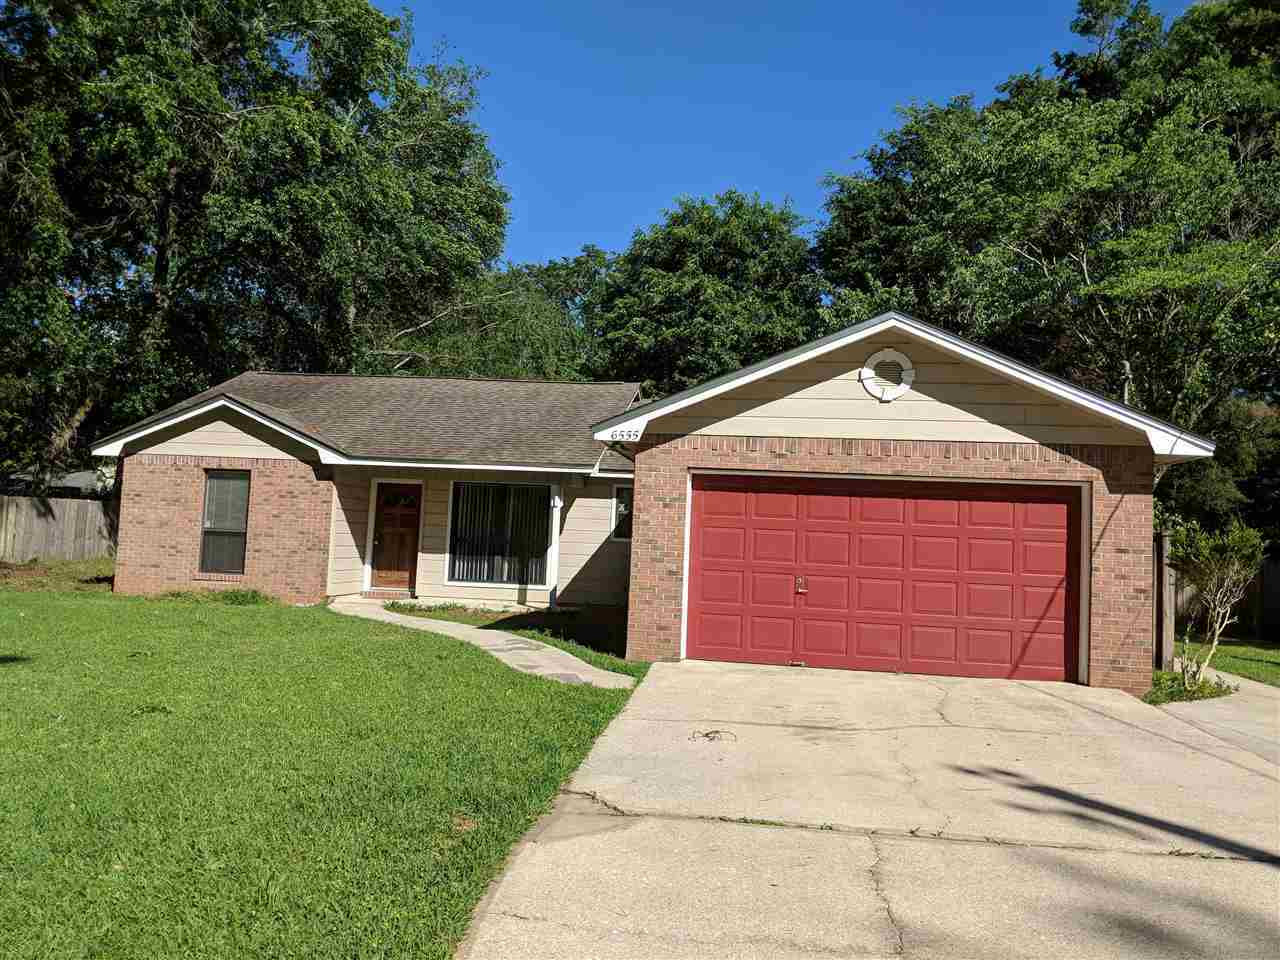 $209,900 - 3Br/2Ba -  for Sale in Killearn Acres, Tallahassee